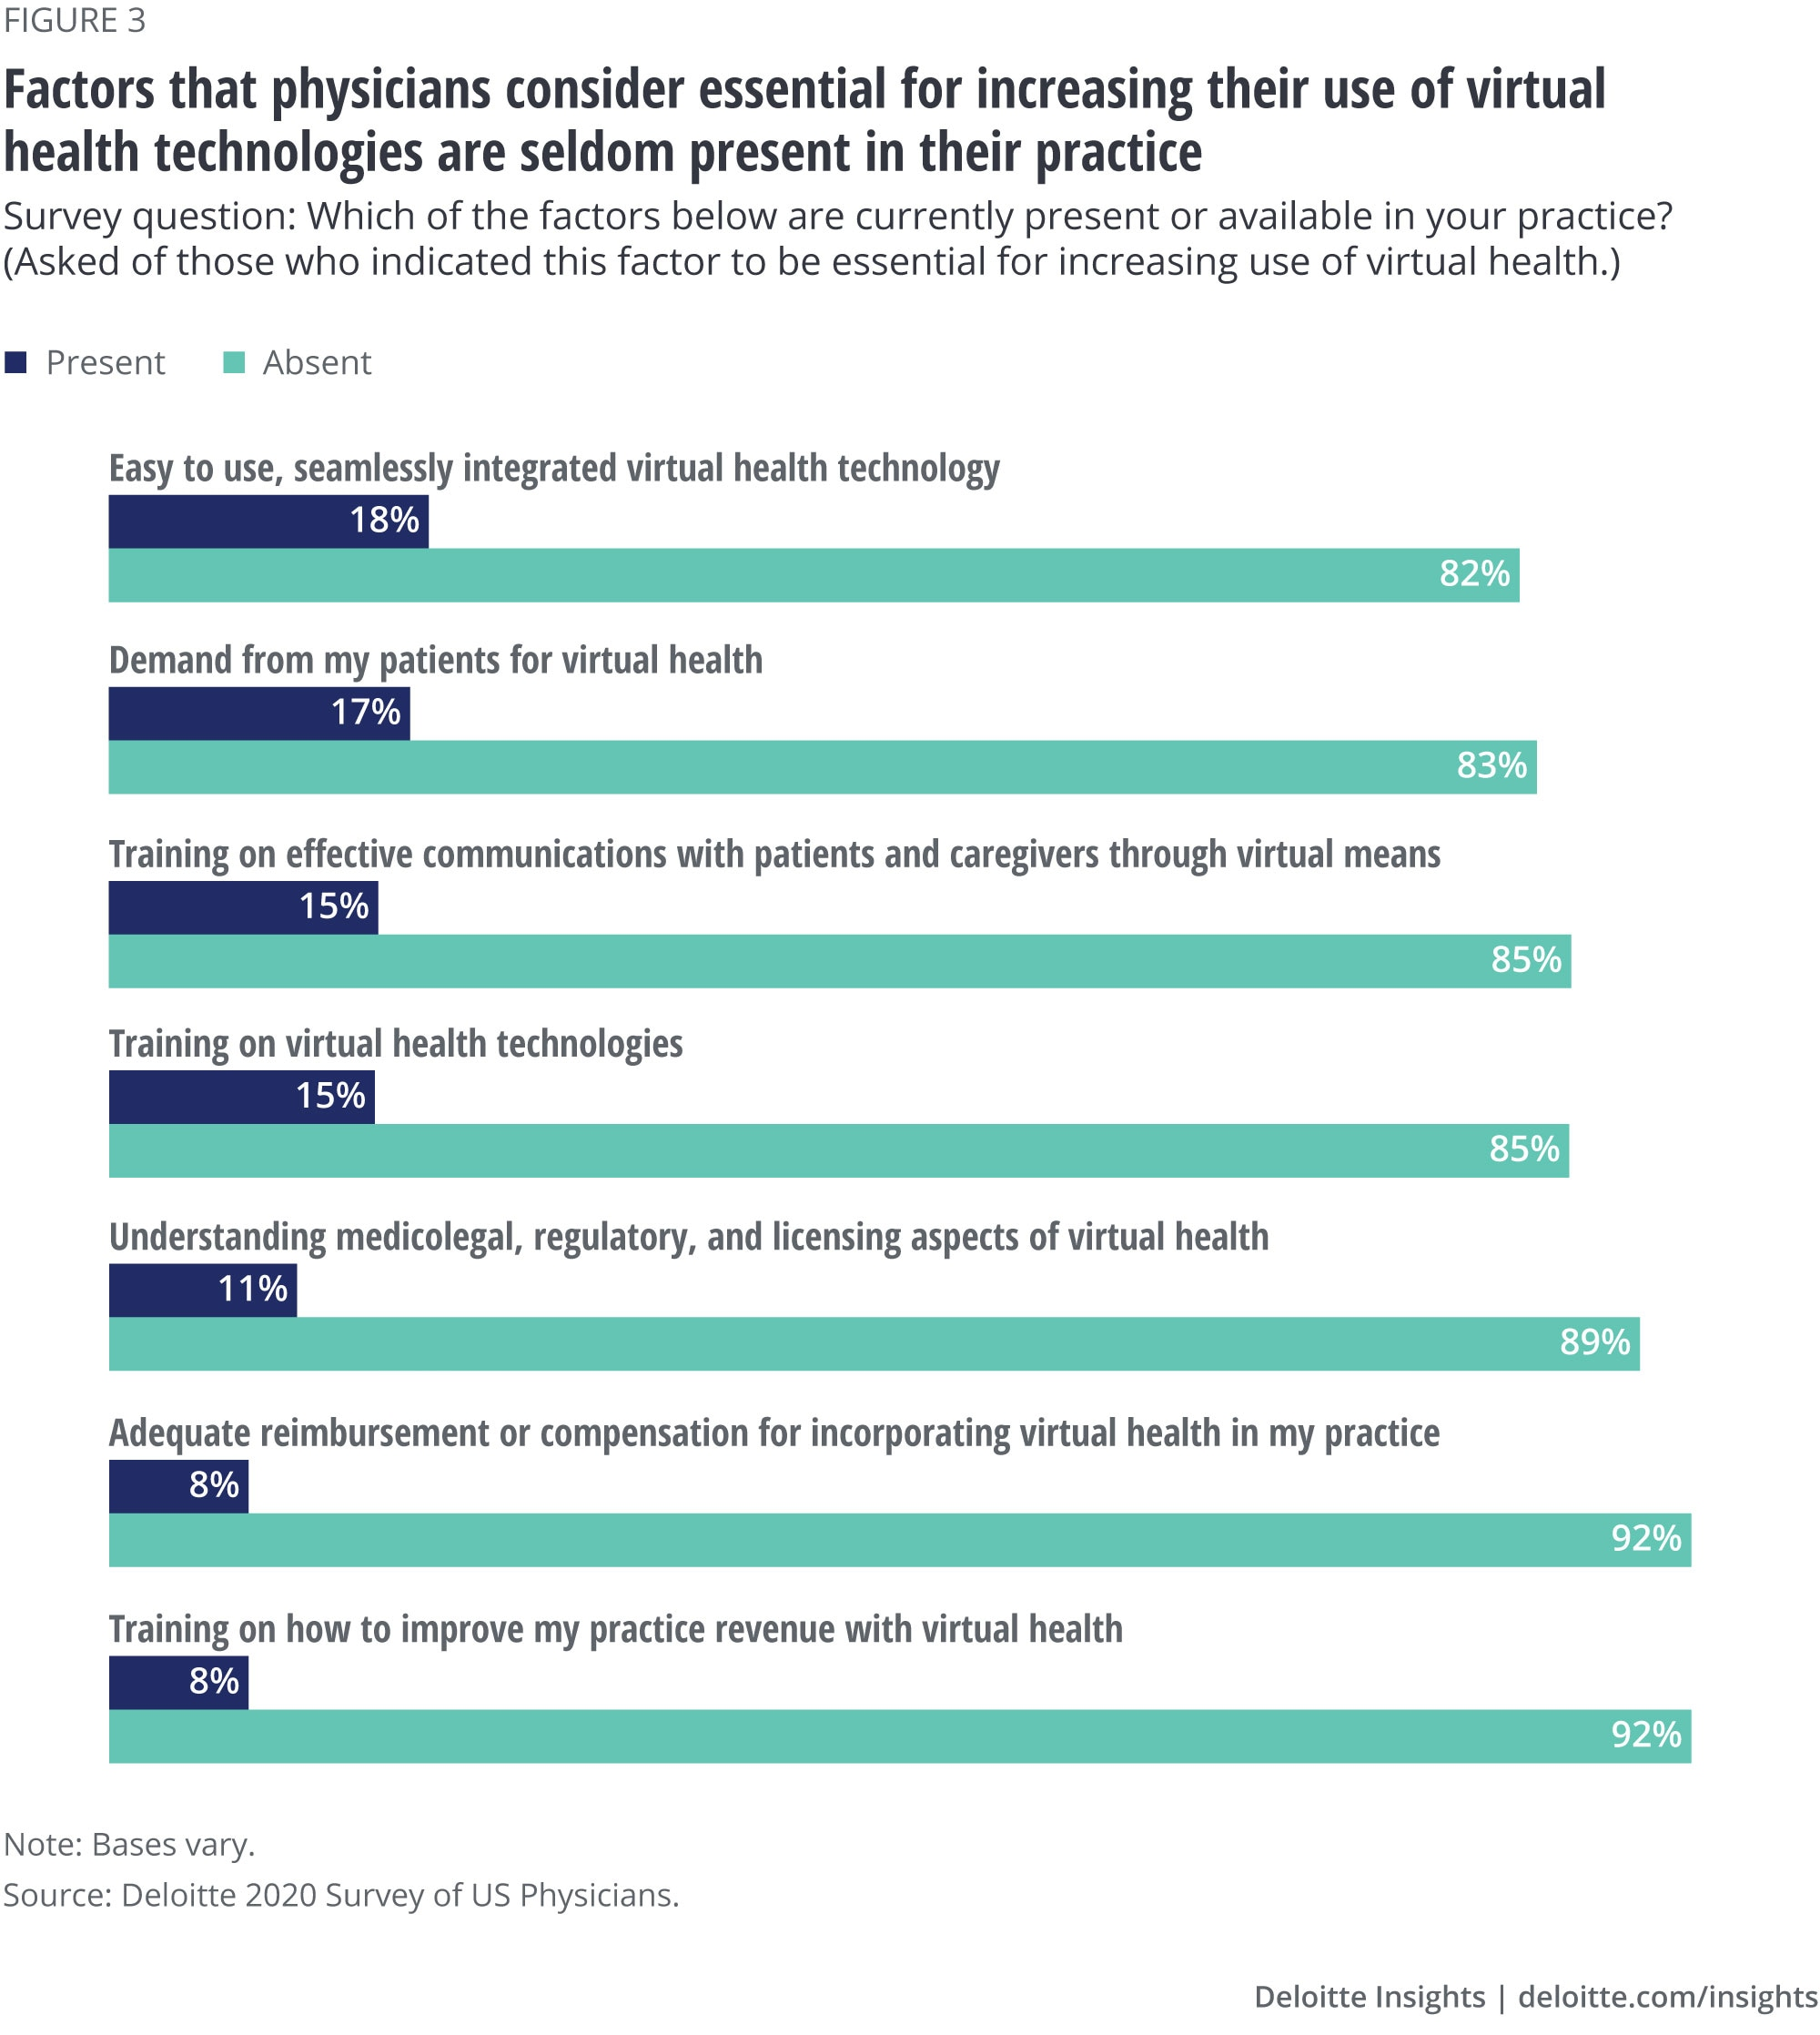 Factors that physicians consider essential for increasing their use of virtual health technologies are seldom present in their practice